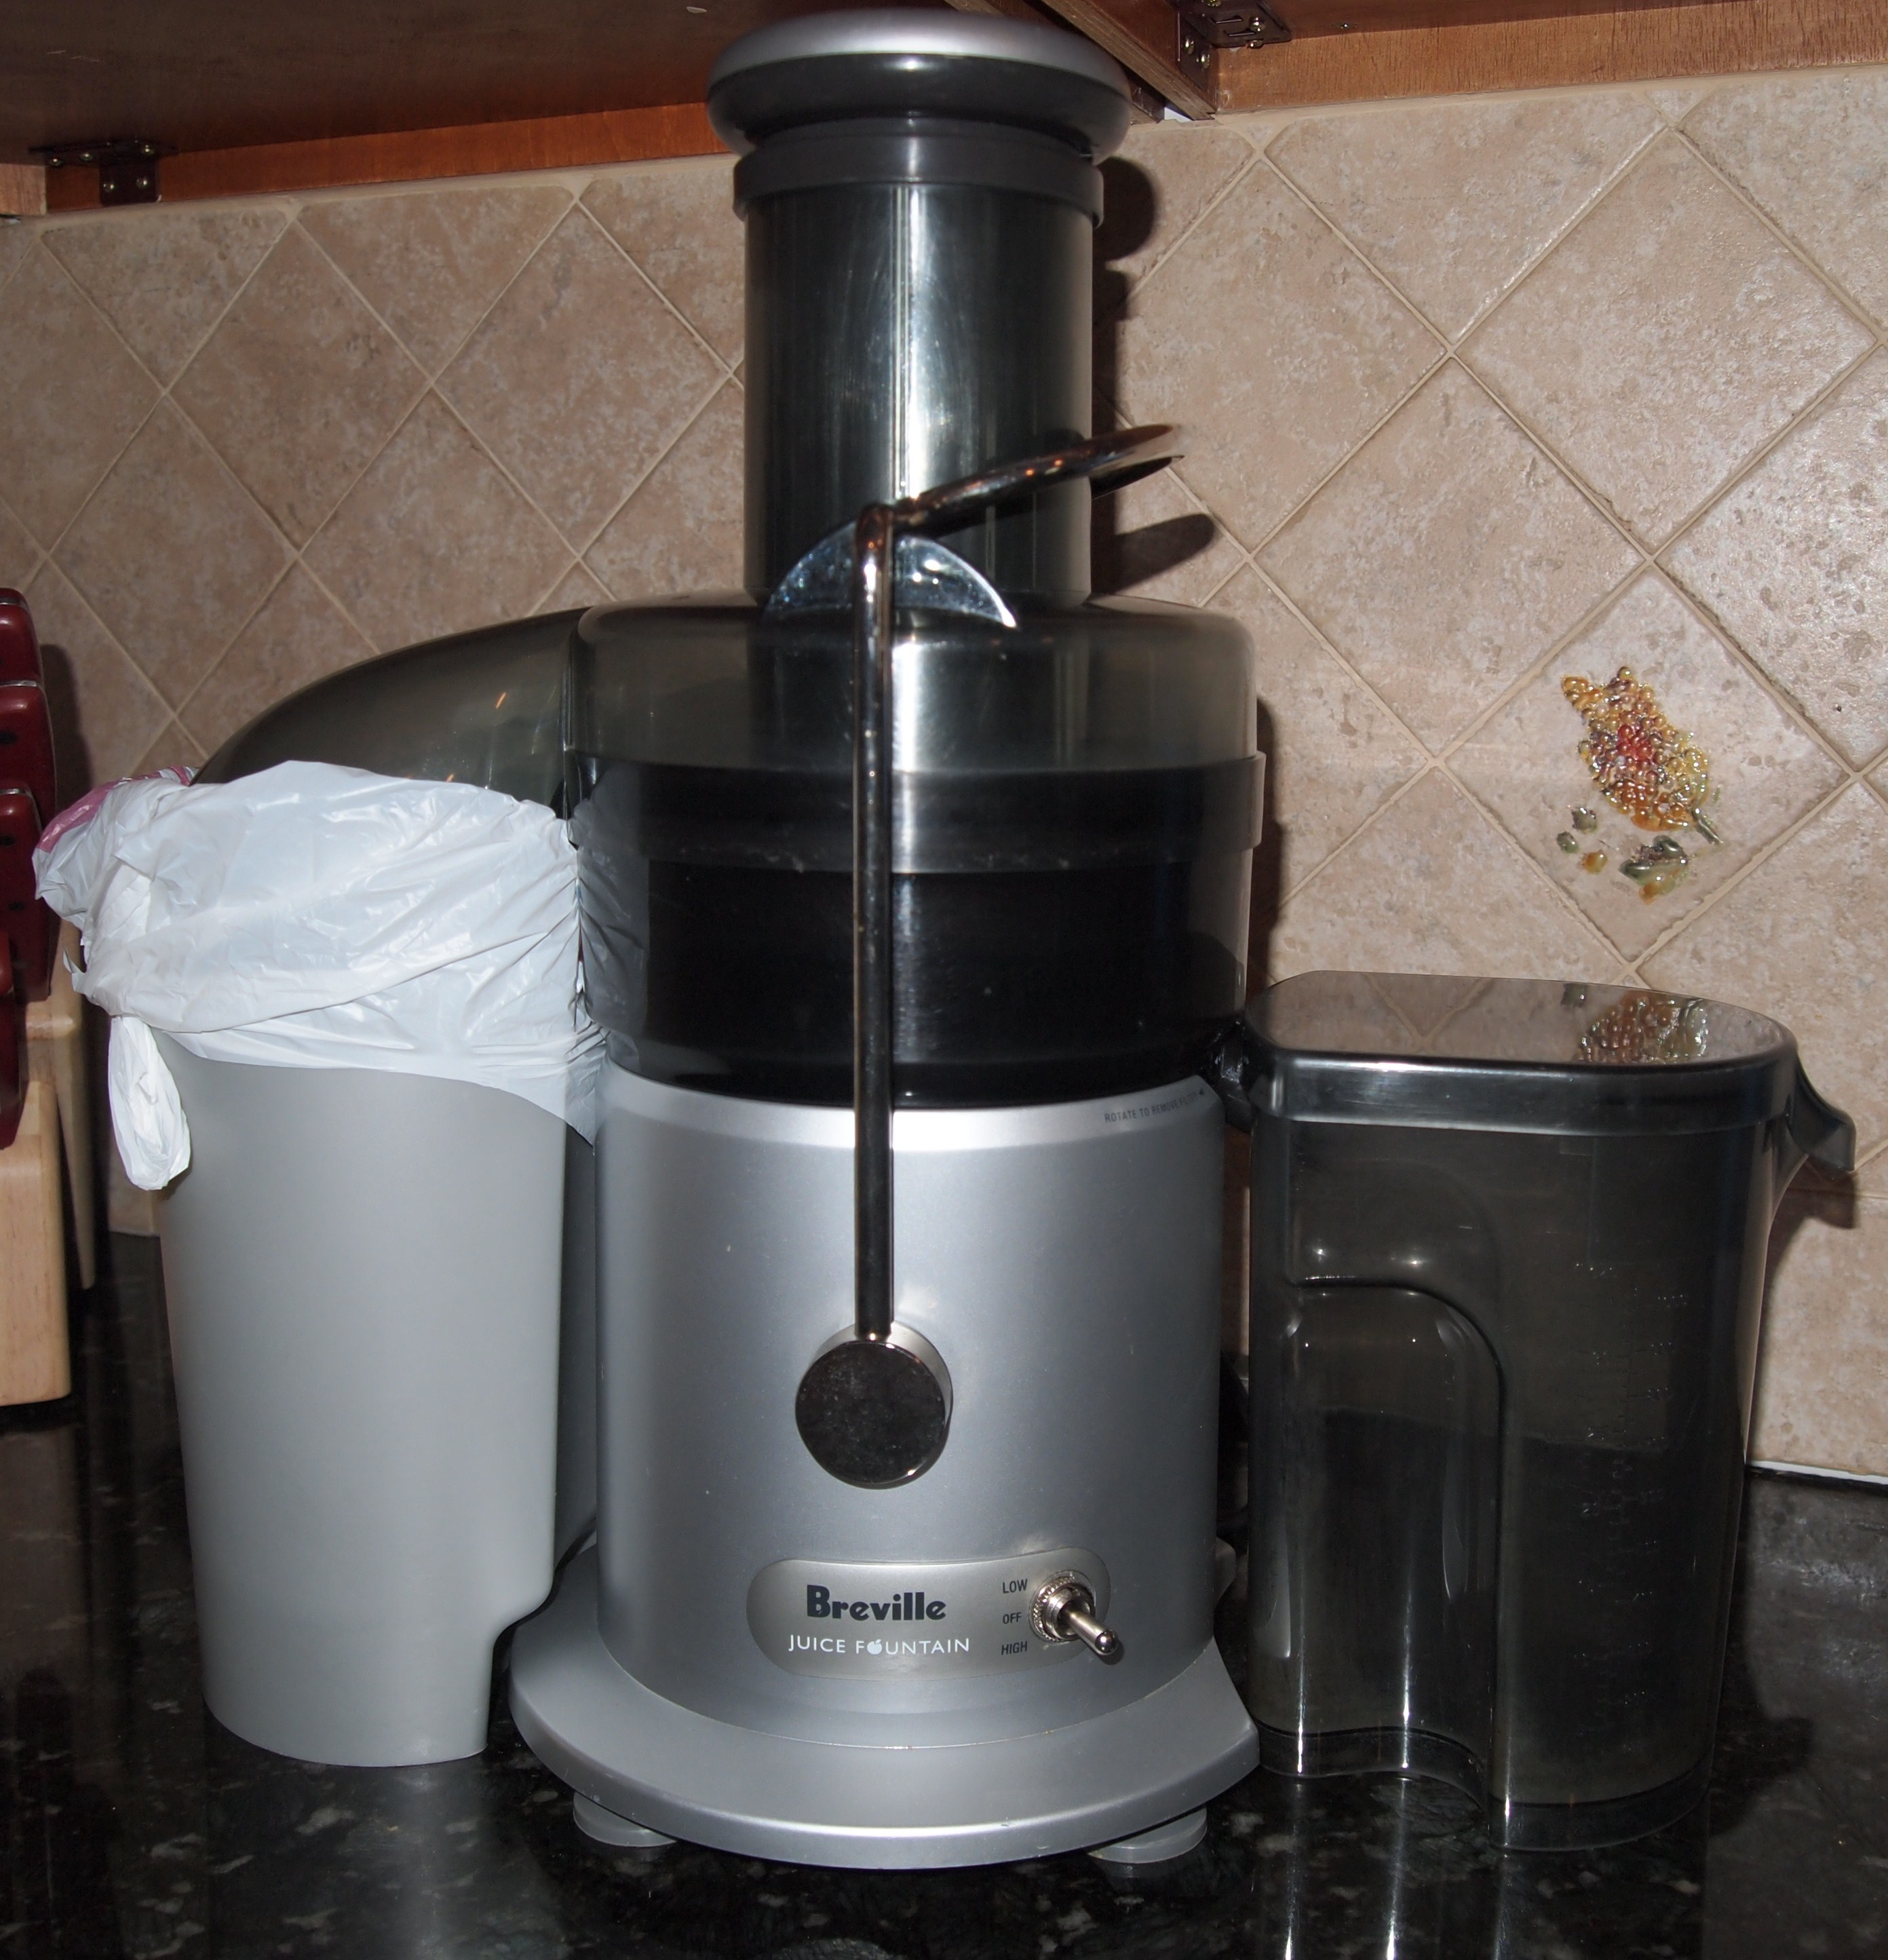 Masticating Juicer Or Centrifugal Juicer : centrifugal juicer Maple Avenue Juice